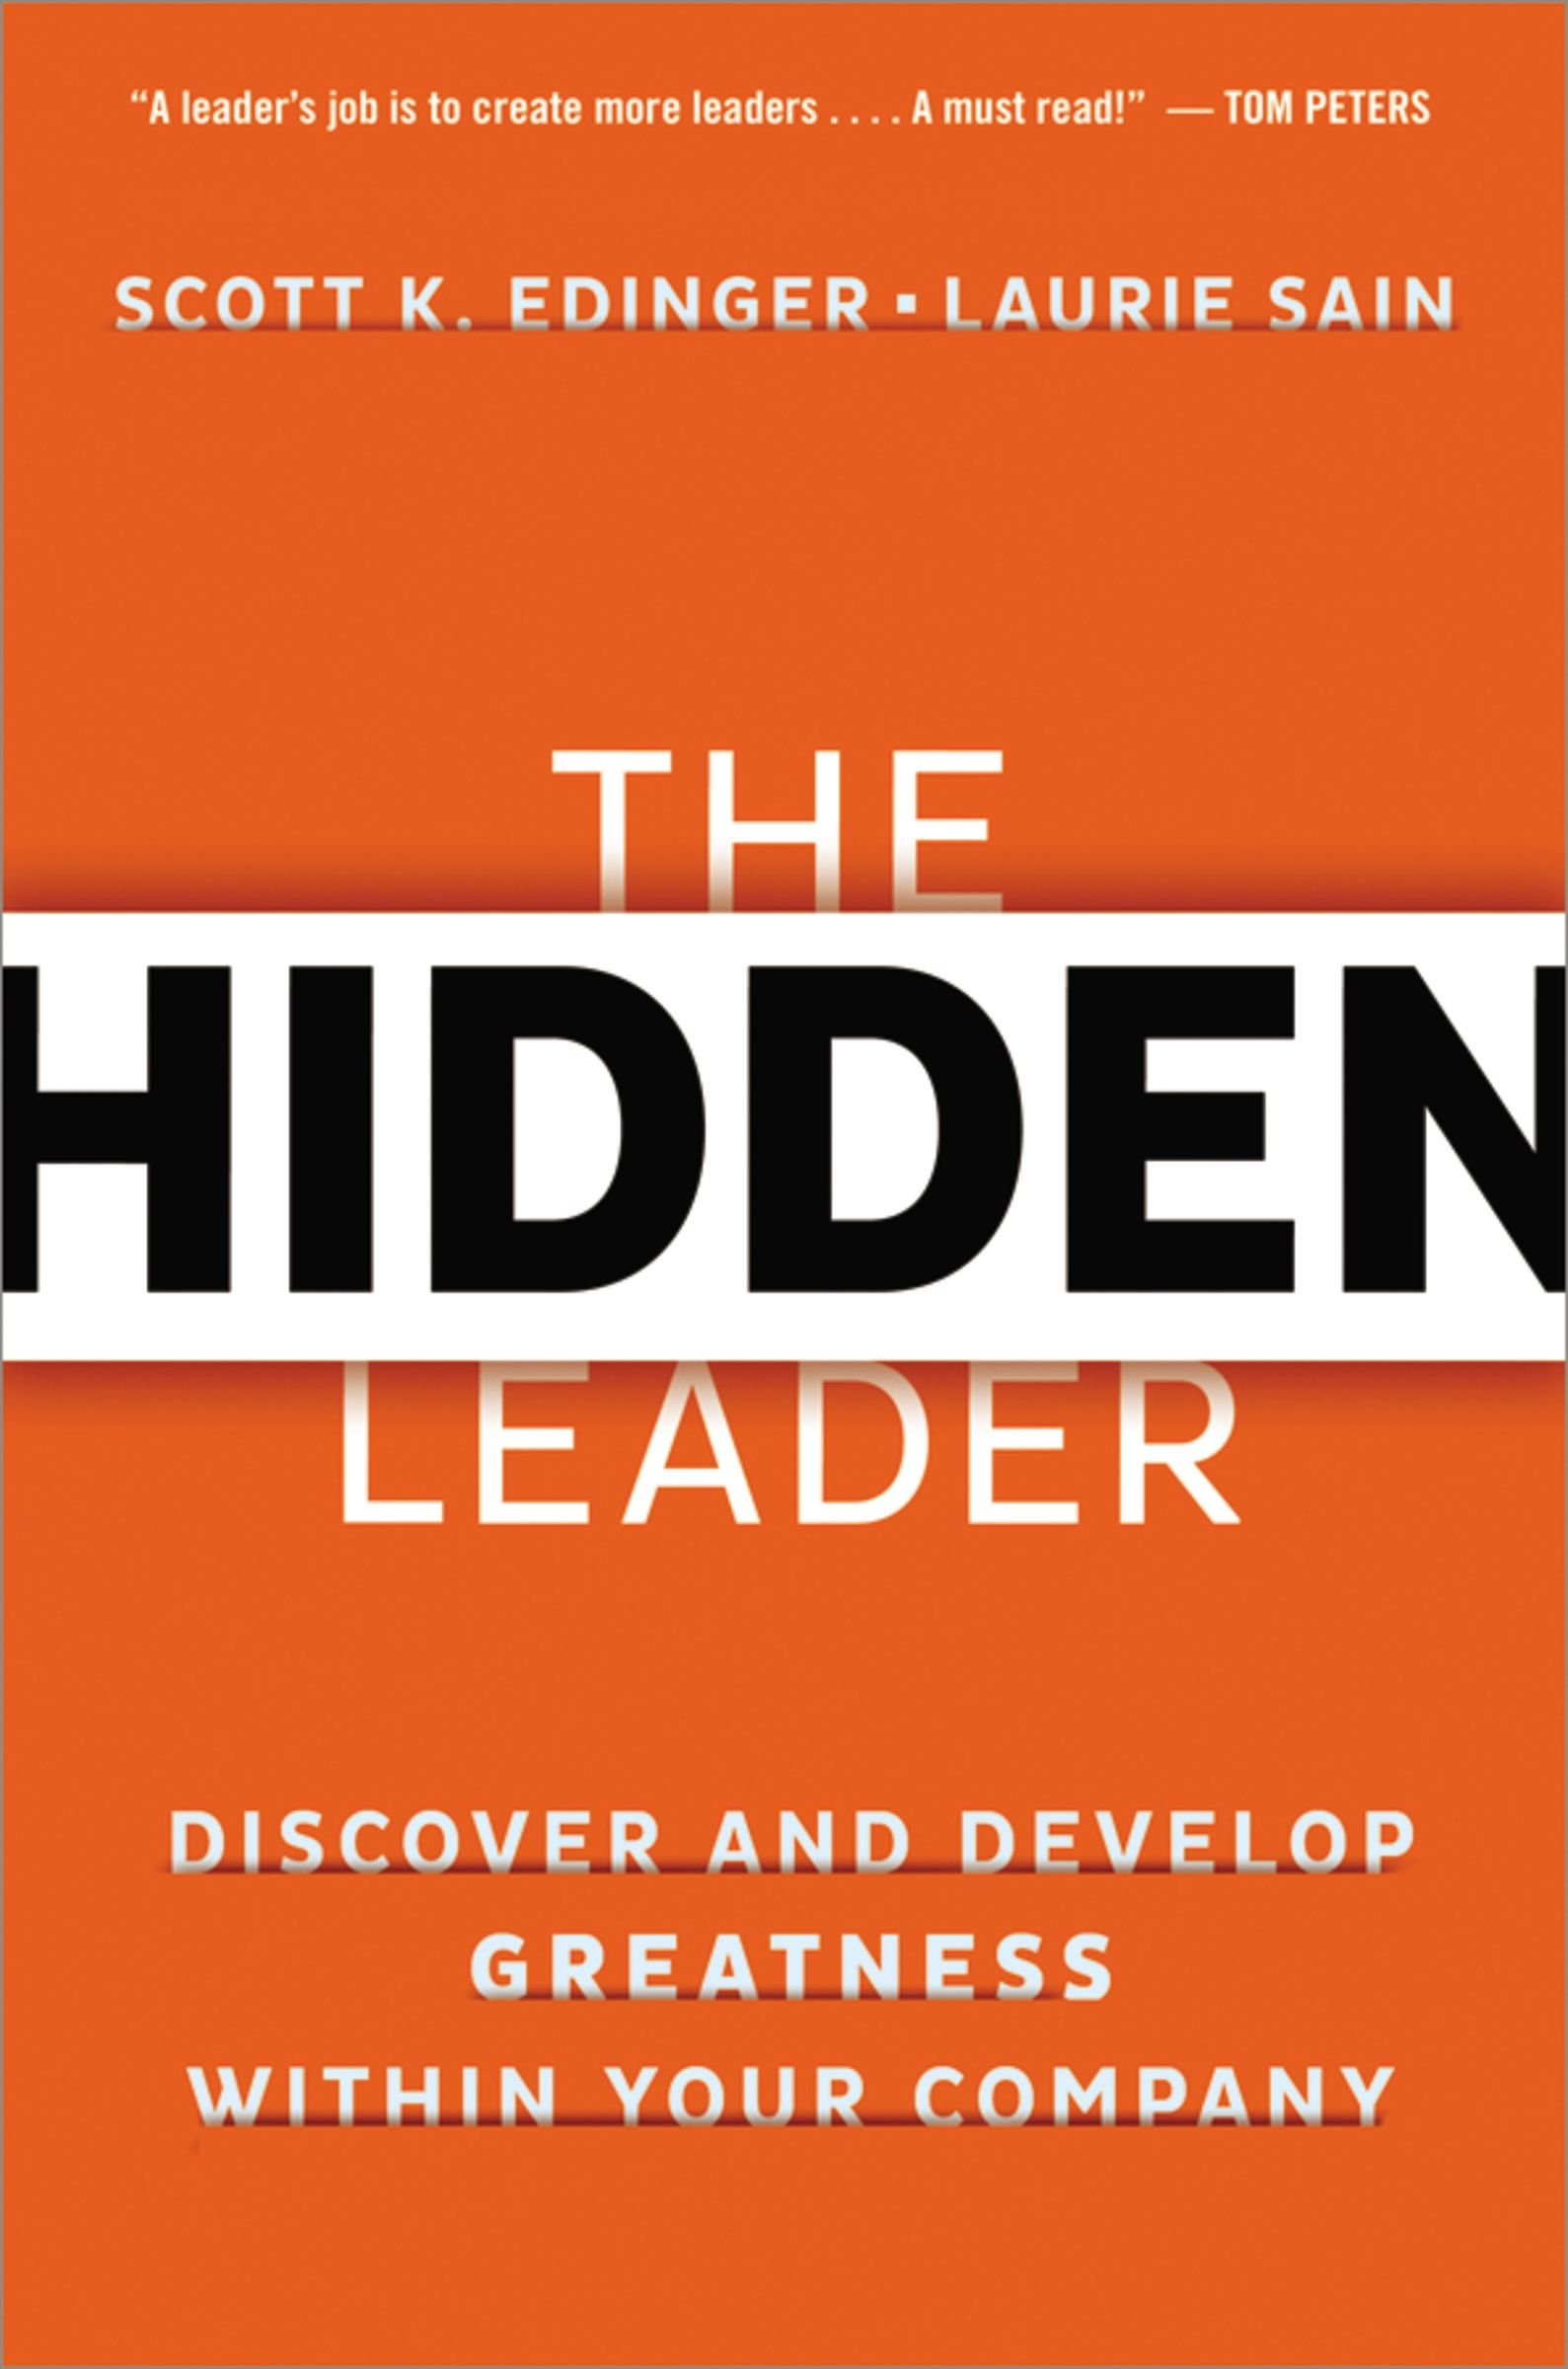 amazoncom the hidden leader discover and develop greatness within your company 9780814433997 scott edinger laurie sain books